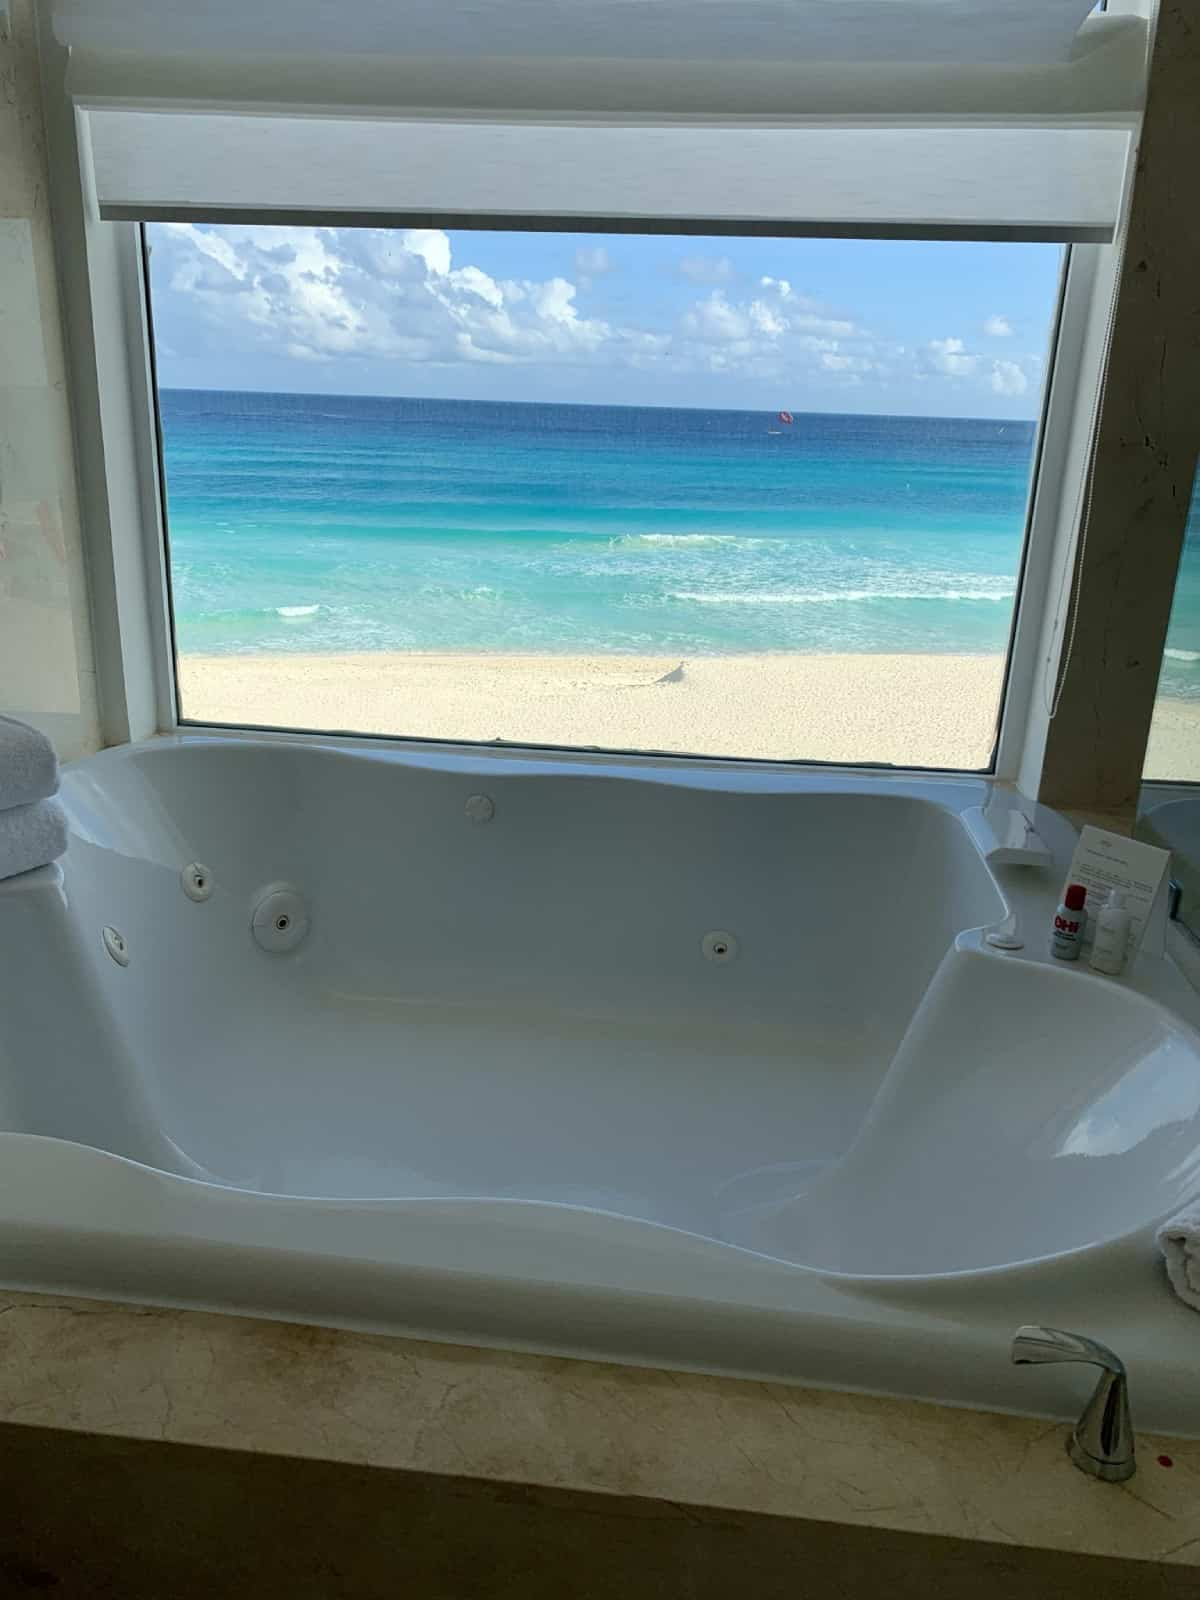 Detailed review of LeBlanc Cancun vs. Excellence Playa Mujeres - a bathtub with a view